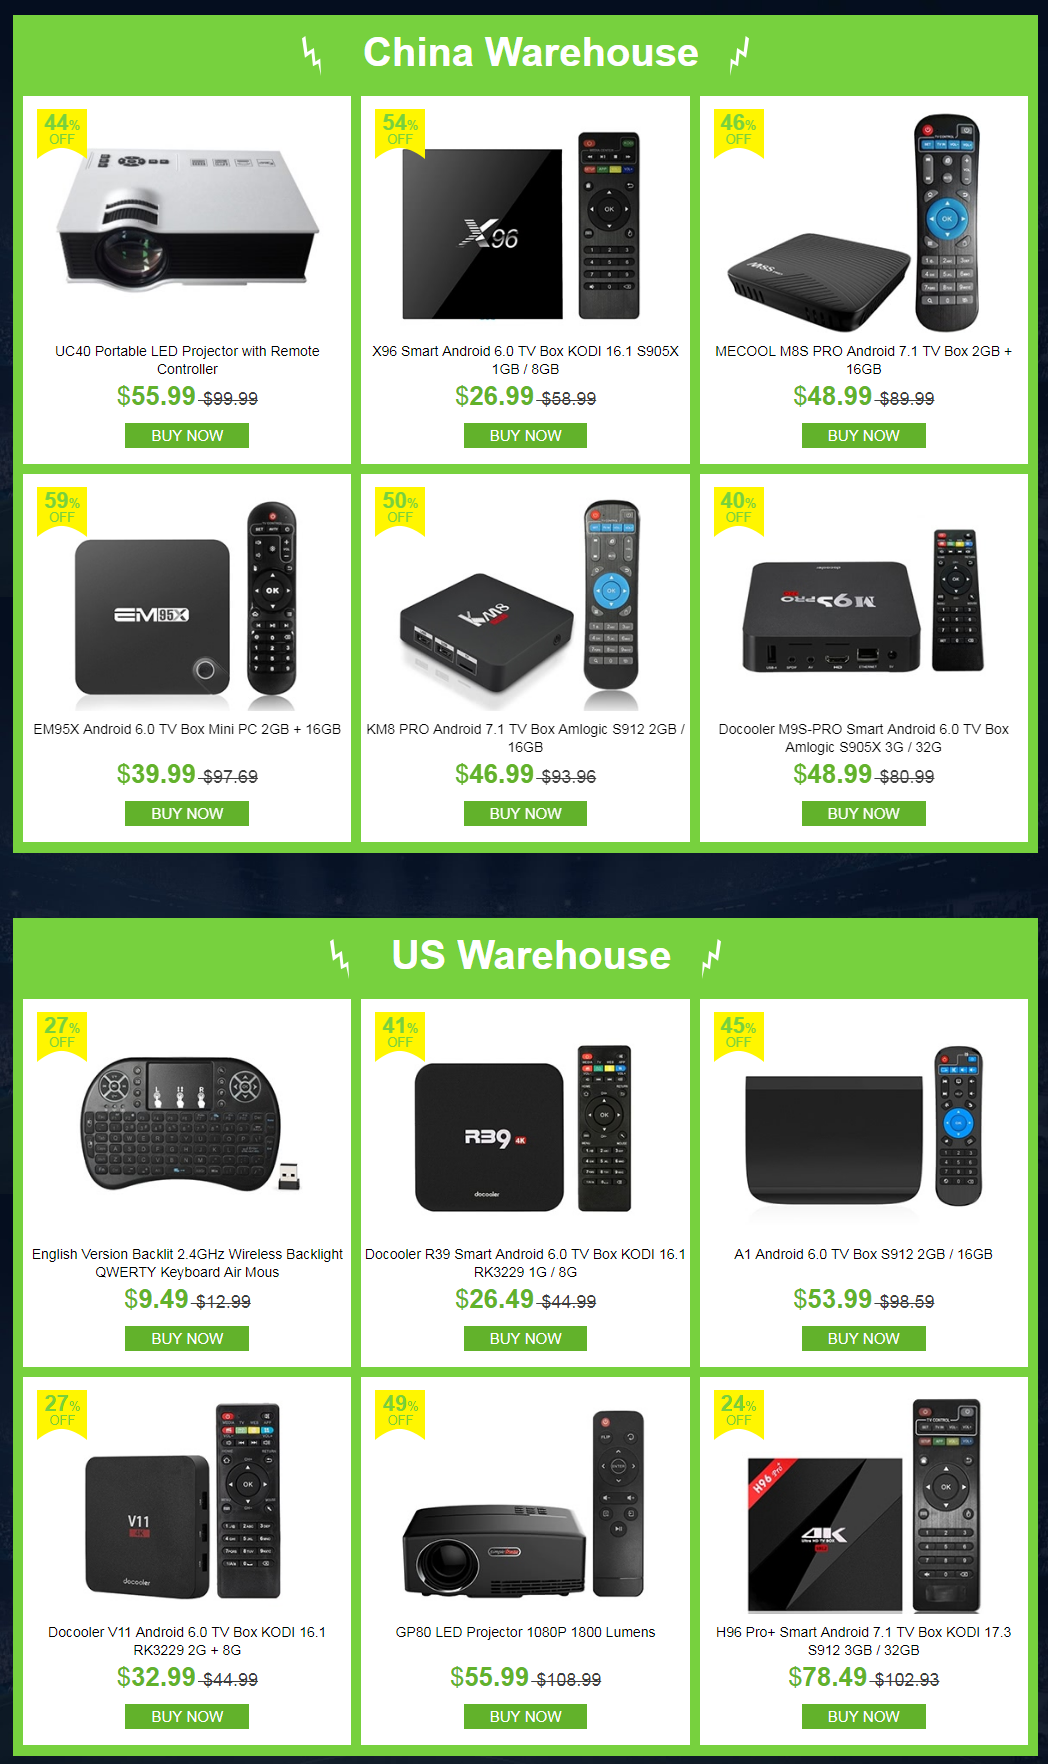 2018 Android TV Box Clearance, CN, US, DE, UK Warehouse with Big Discount